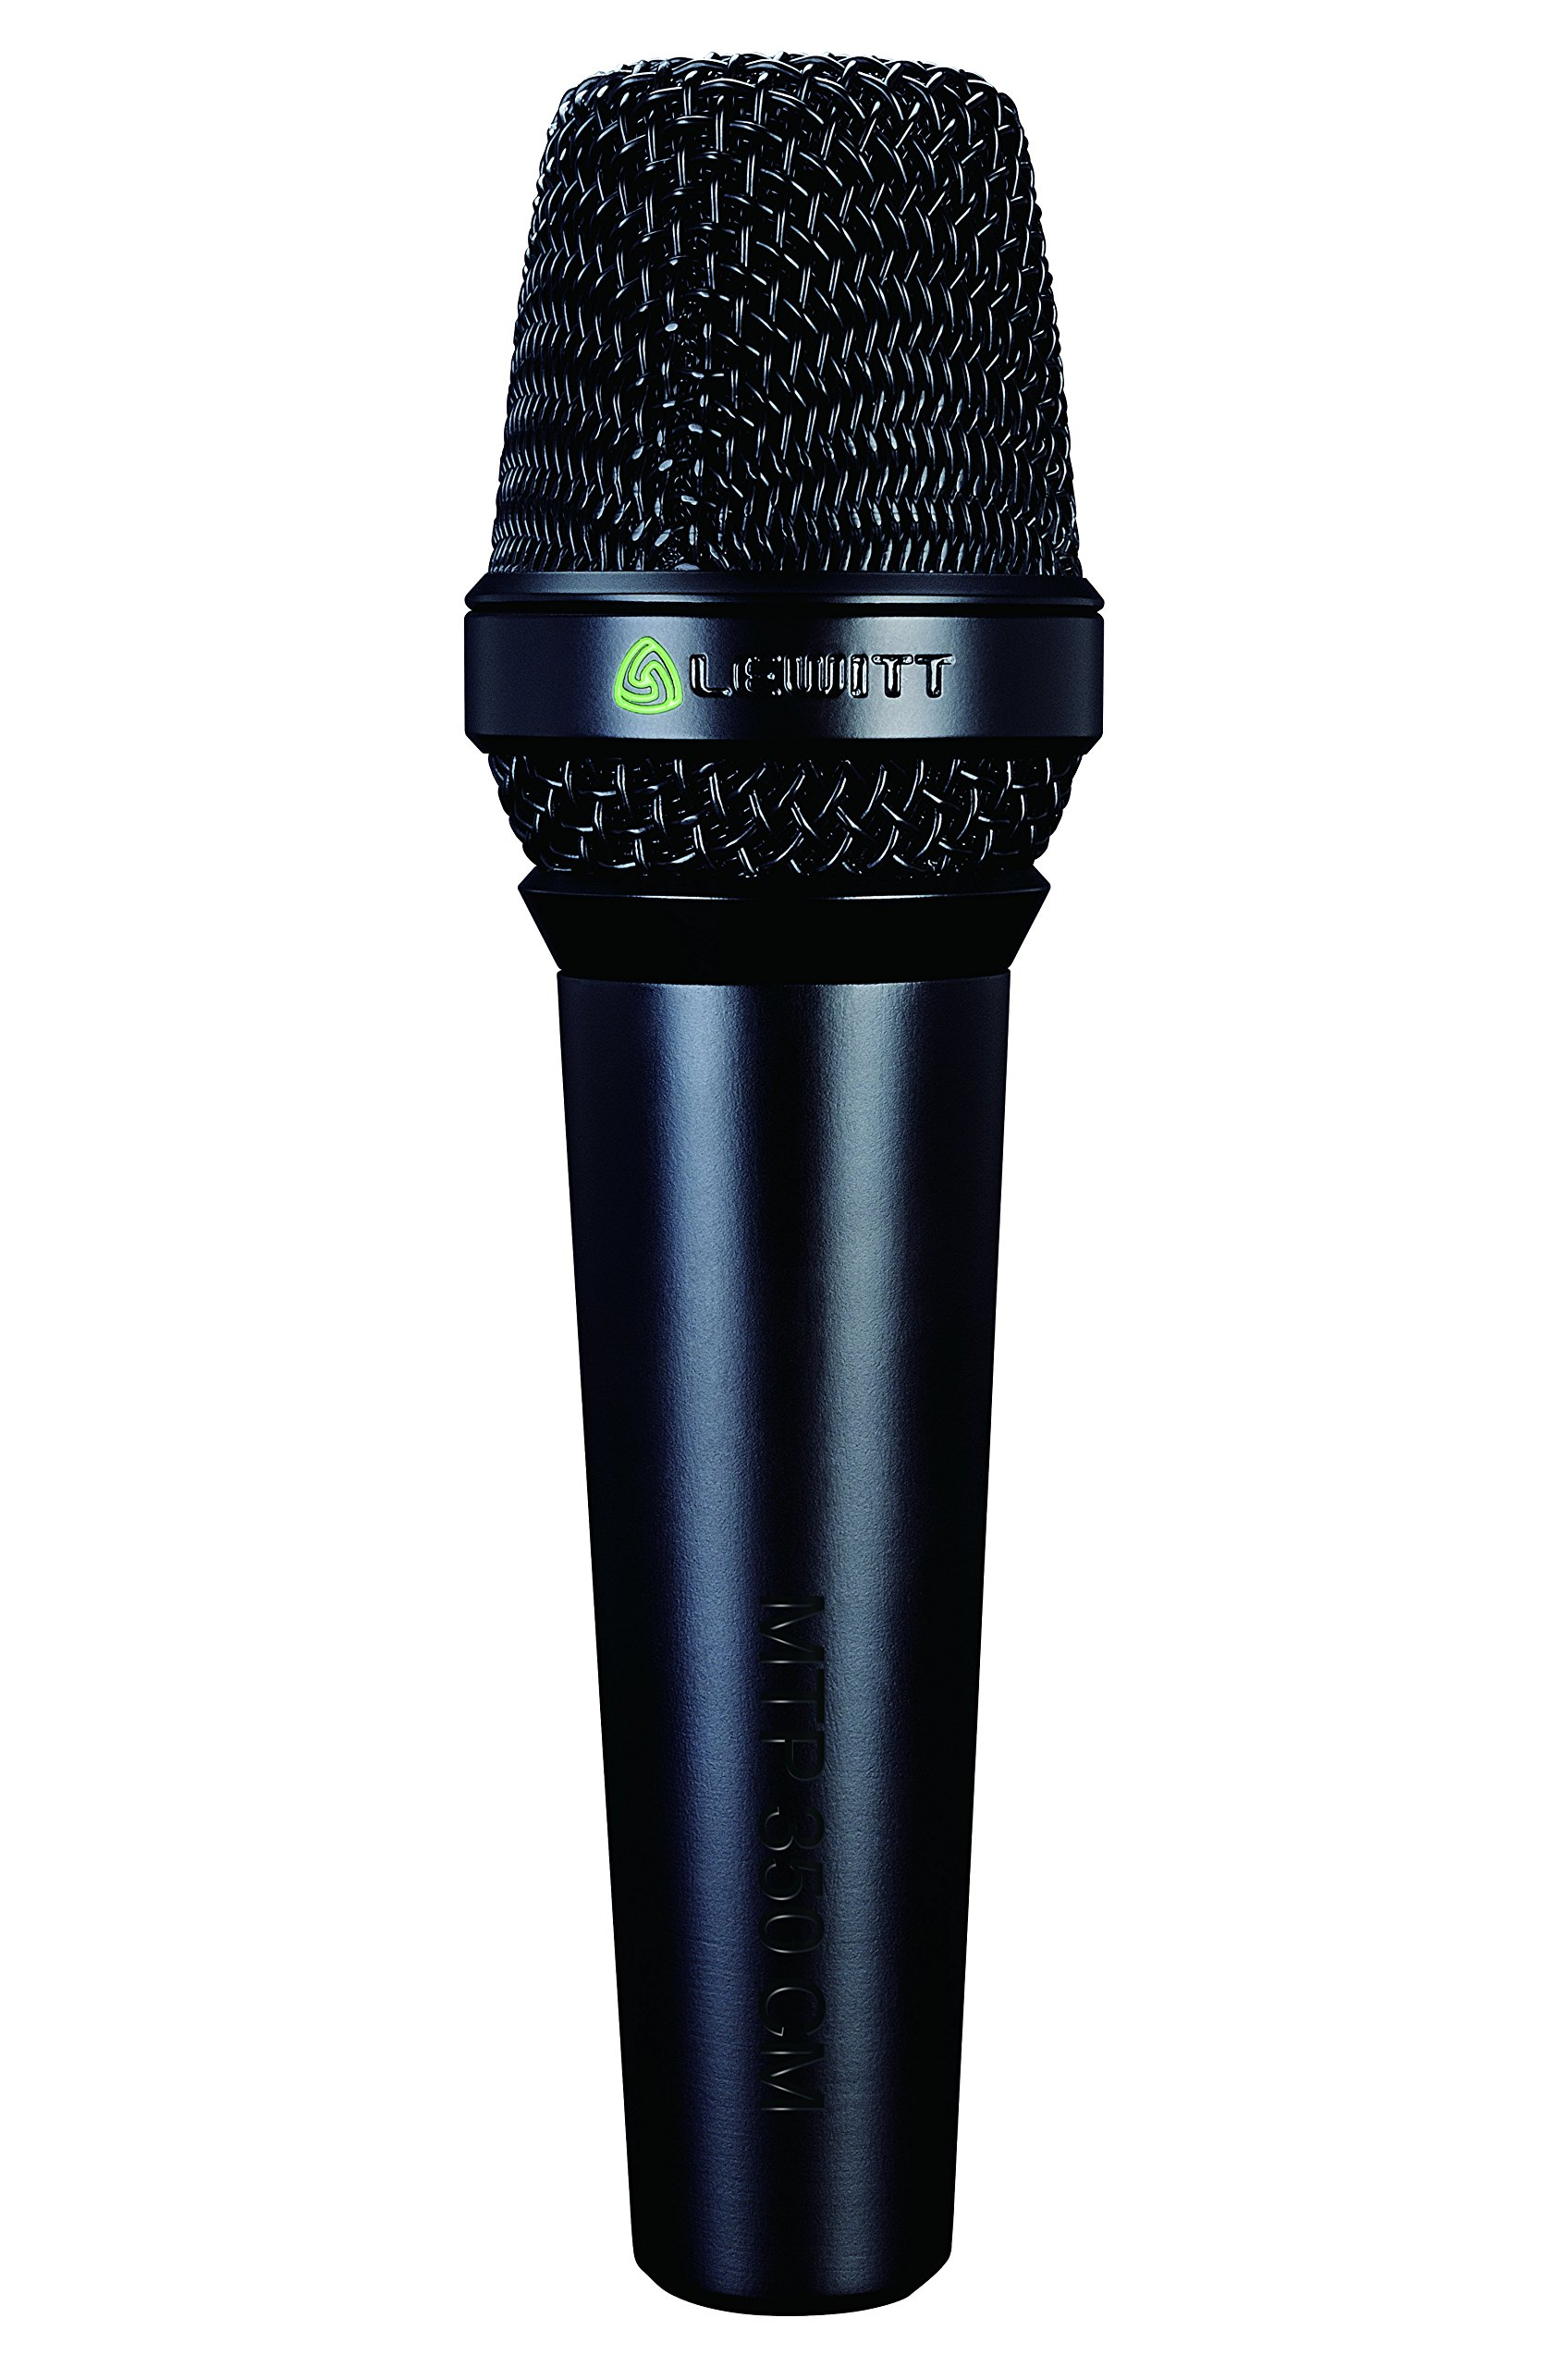 Lewitt Wired Handheld Microphone for Vocals and Live Interviews (MTP-350-CM)